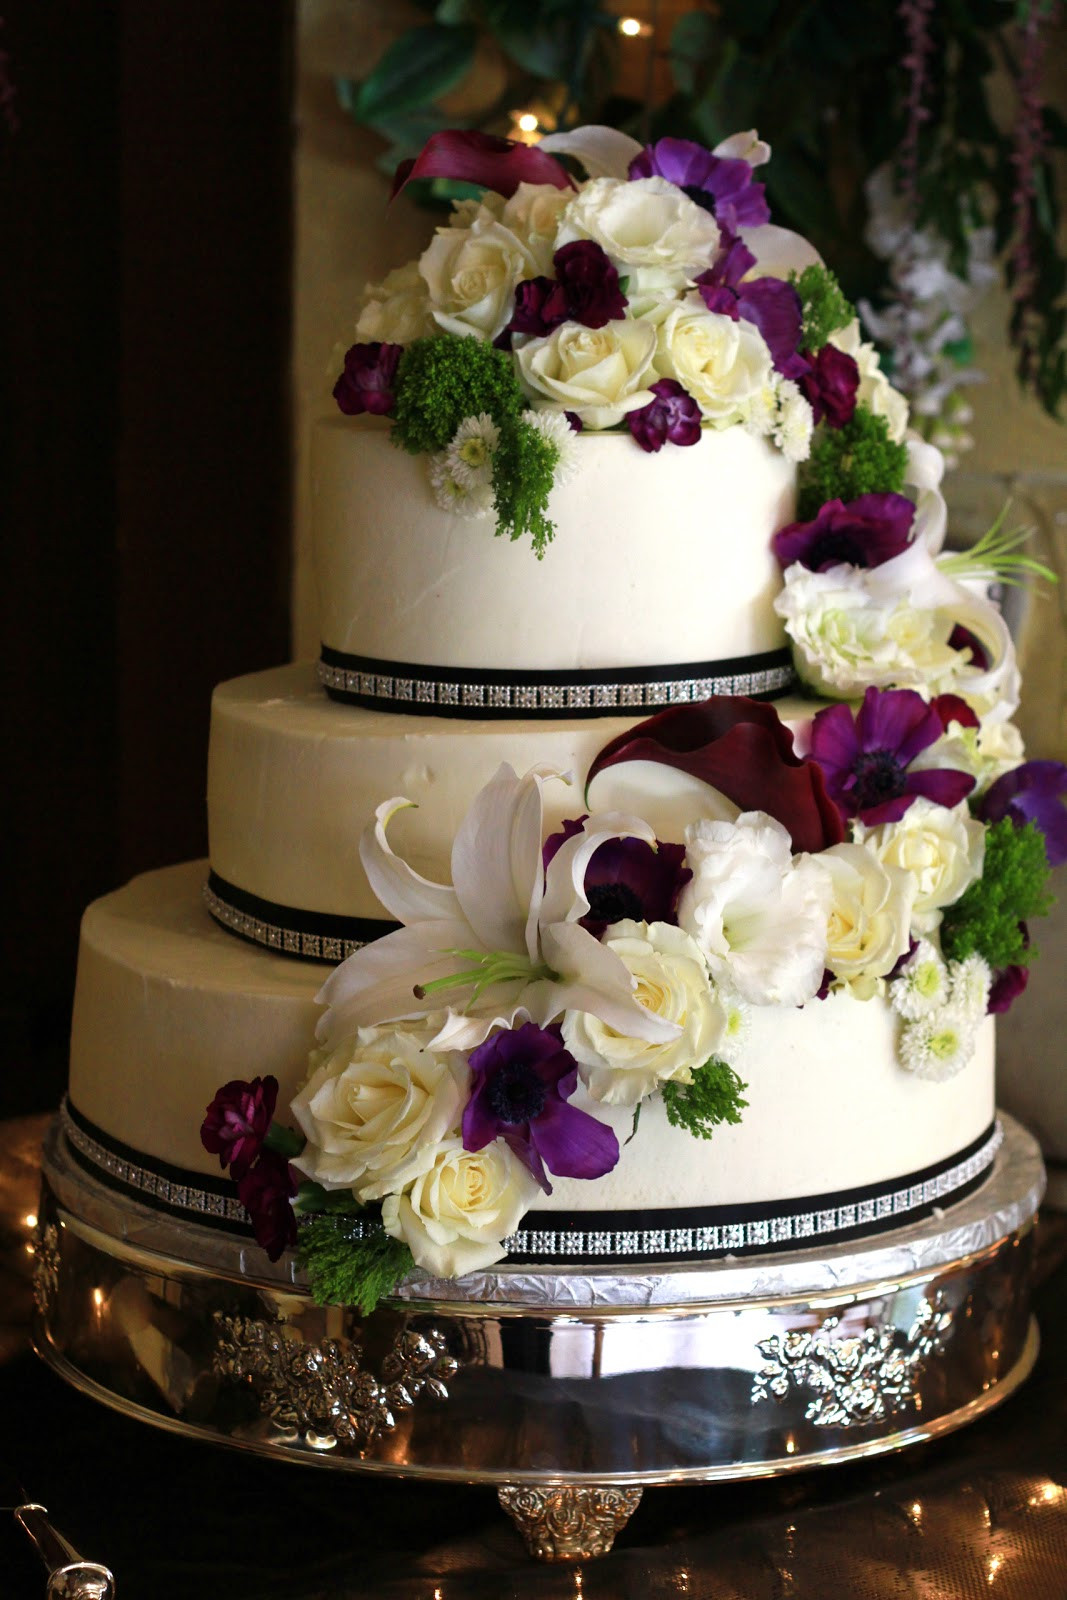 Wedding Cakes Decorated  Exquisite Cookies 3 Tier wedding cake with fresh flowers